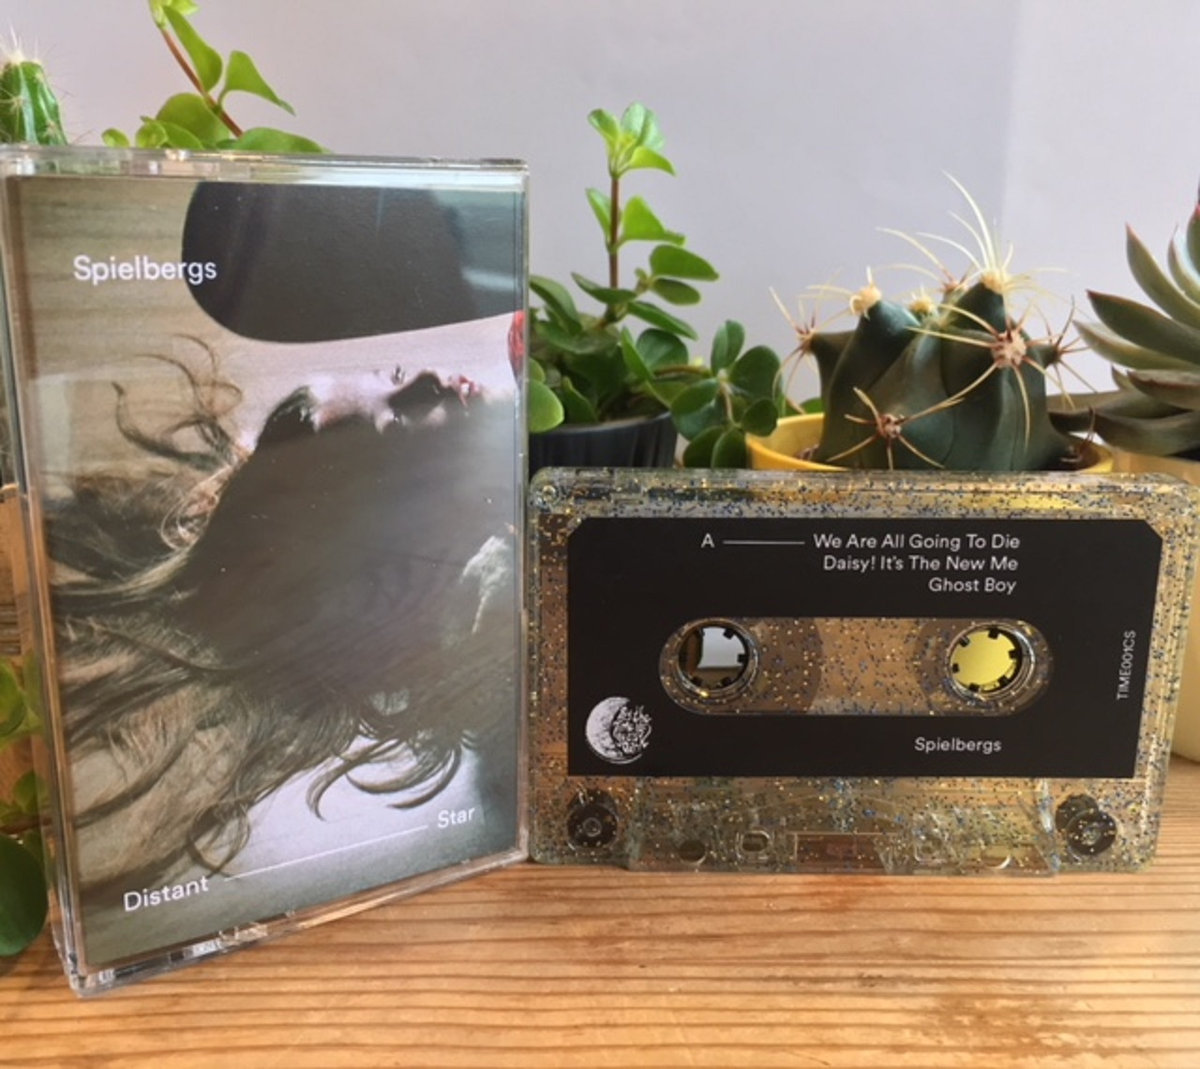 Spielbergs - Distant Star EP - Ltd Edition Cassette Tape - By The Time It Gets Dark